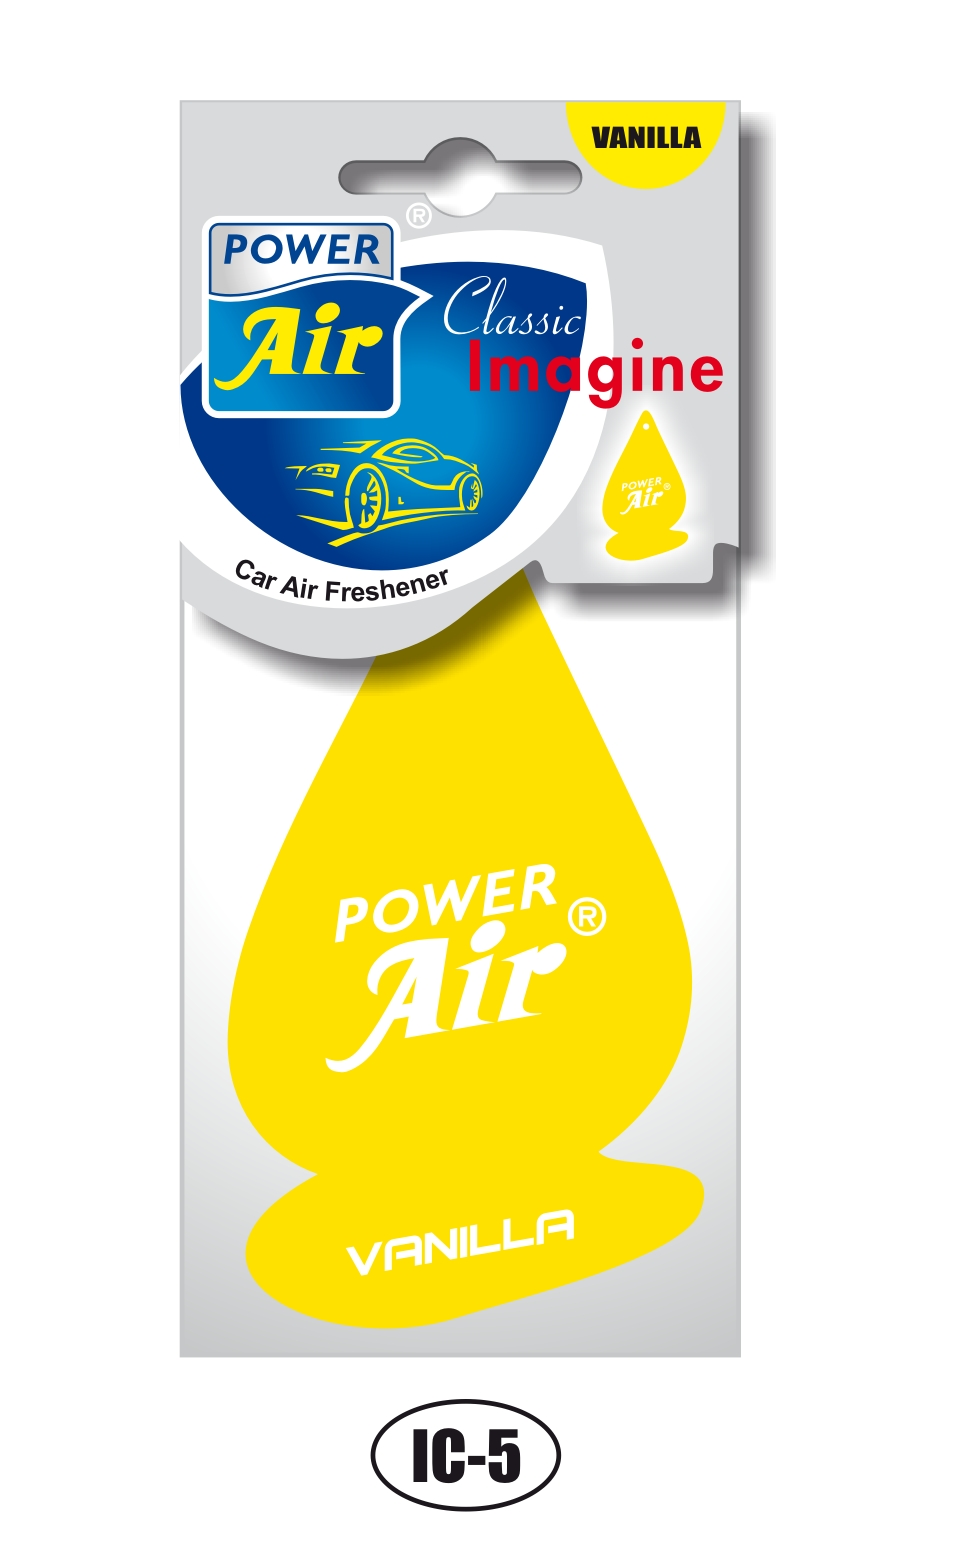 Power Air Imagine Clasic osviežovač vzduchu Vanilla